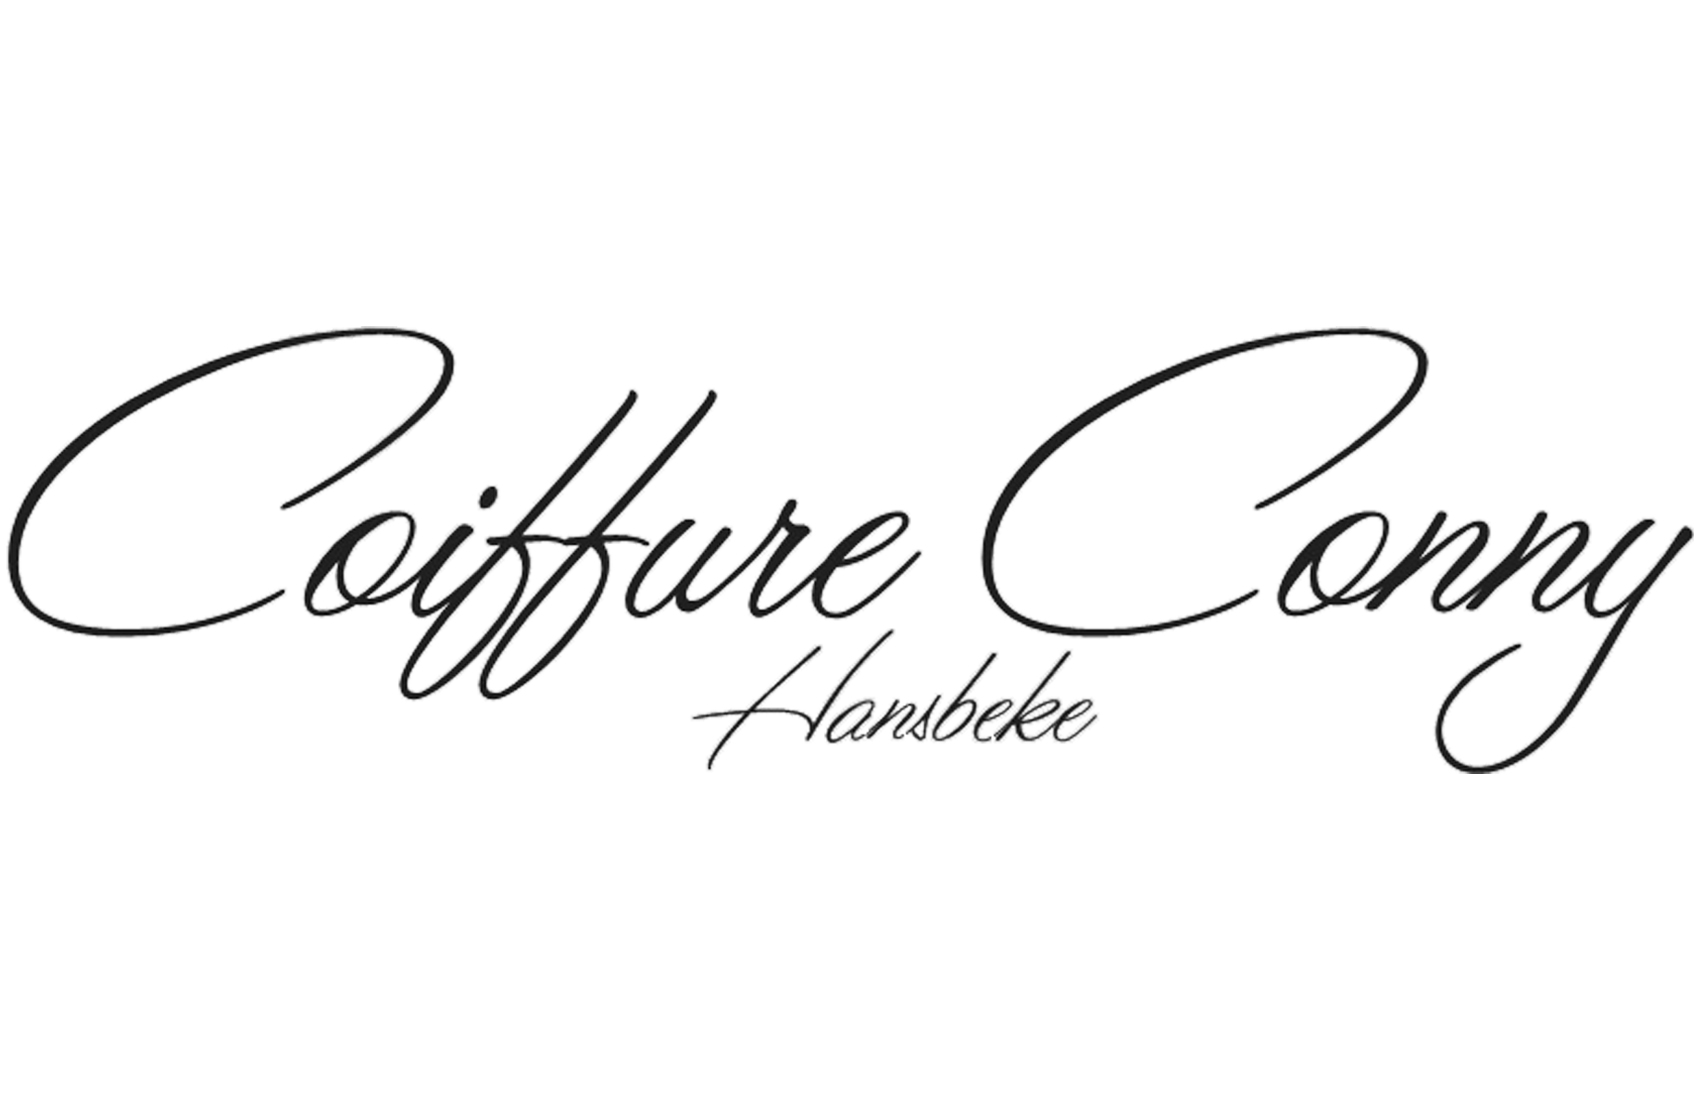 Coiffure Conny